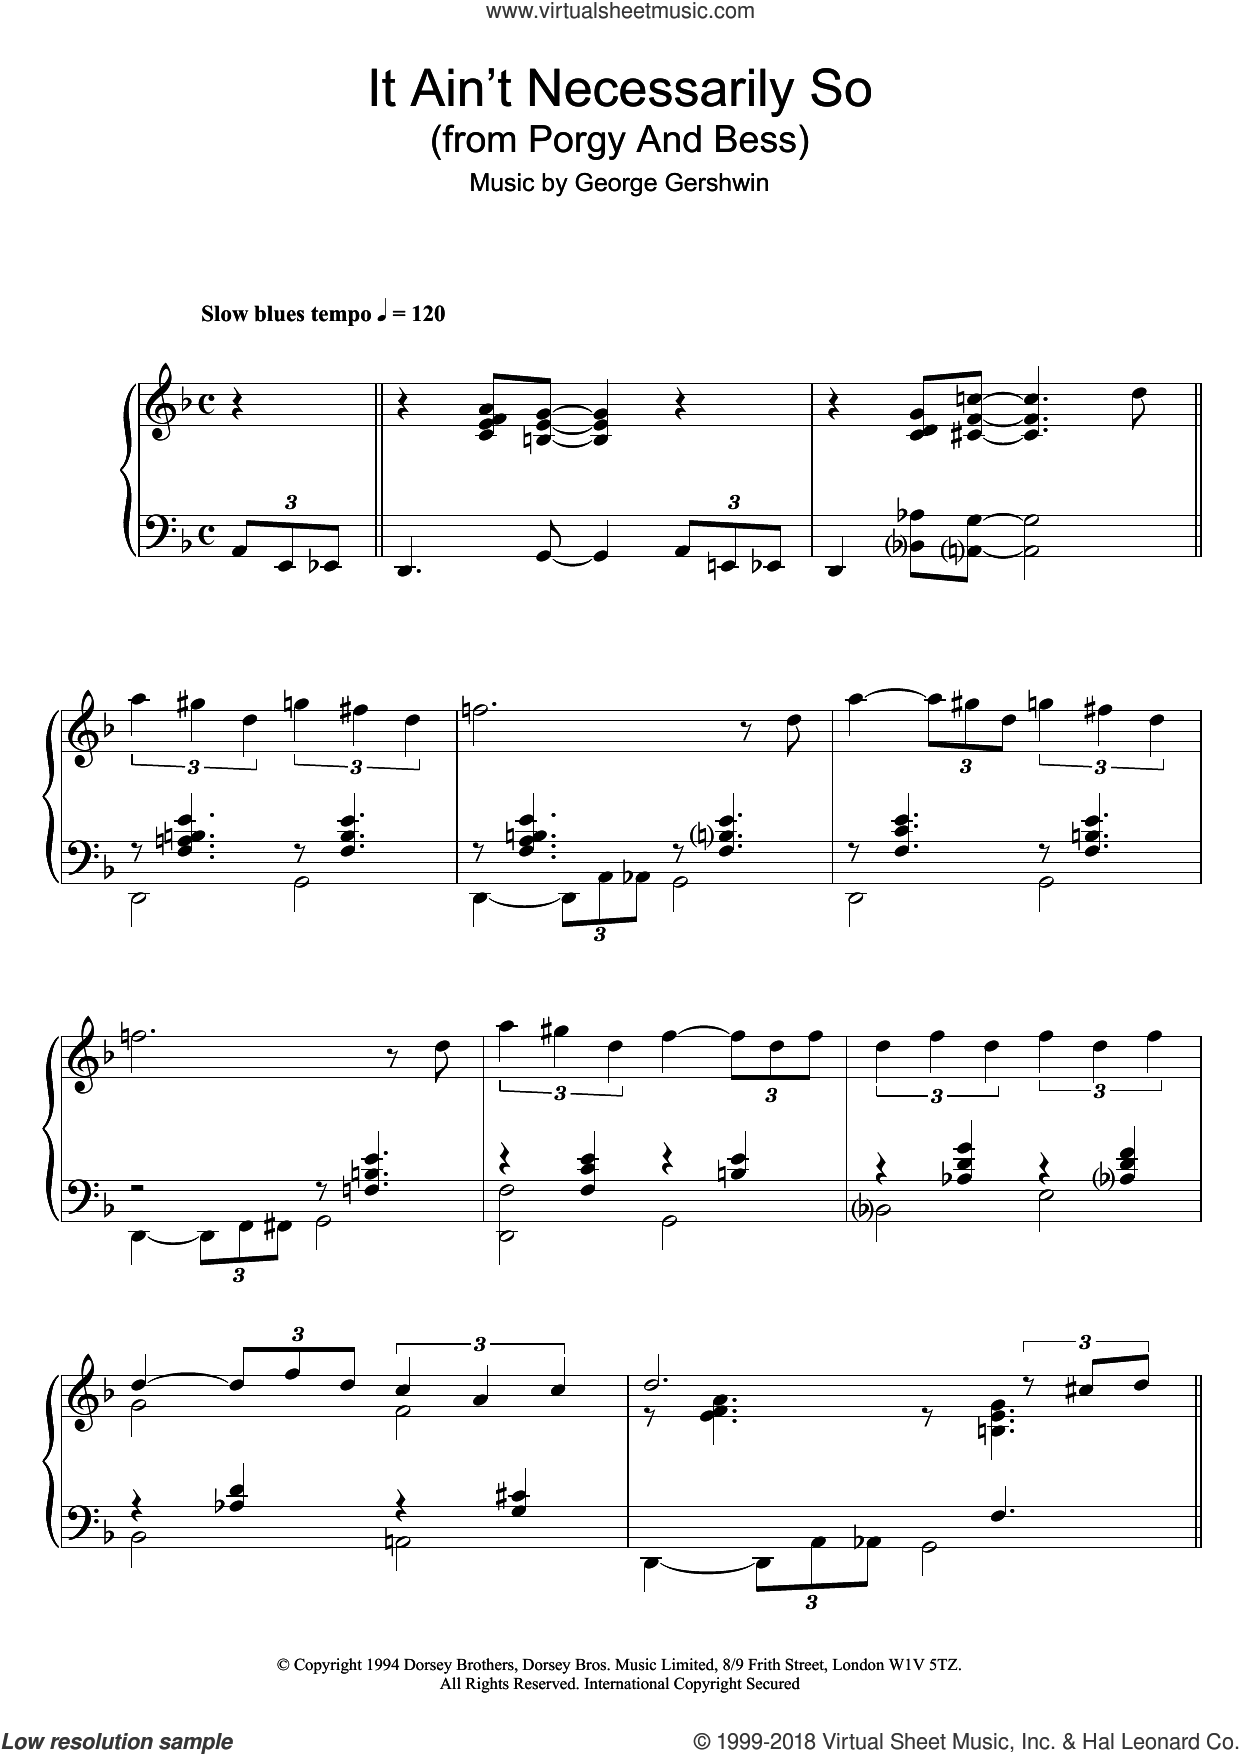 It Ain't Necessarily So sheet music for piano solo by Ira Gershwin